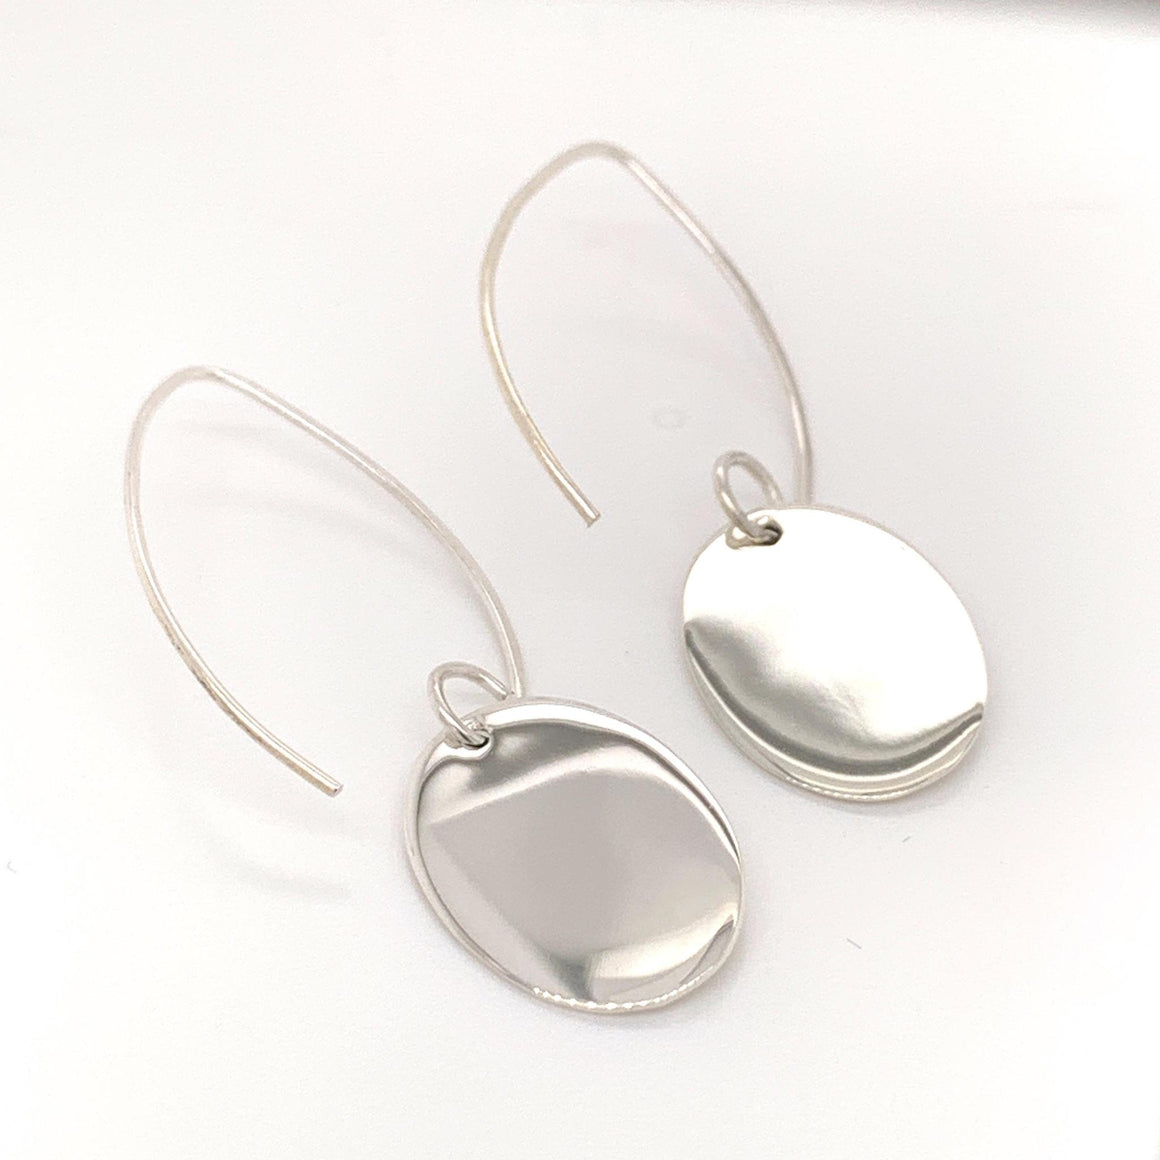 GERMAN SILVER OVAL ENGRAVABLE EARRINGS WITH LONG WIRE - Atlanta Jewelers Supply